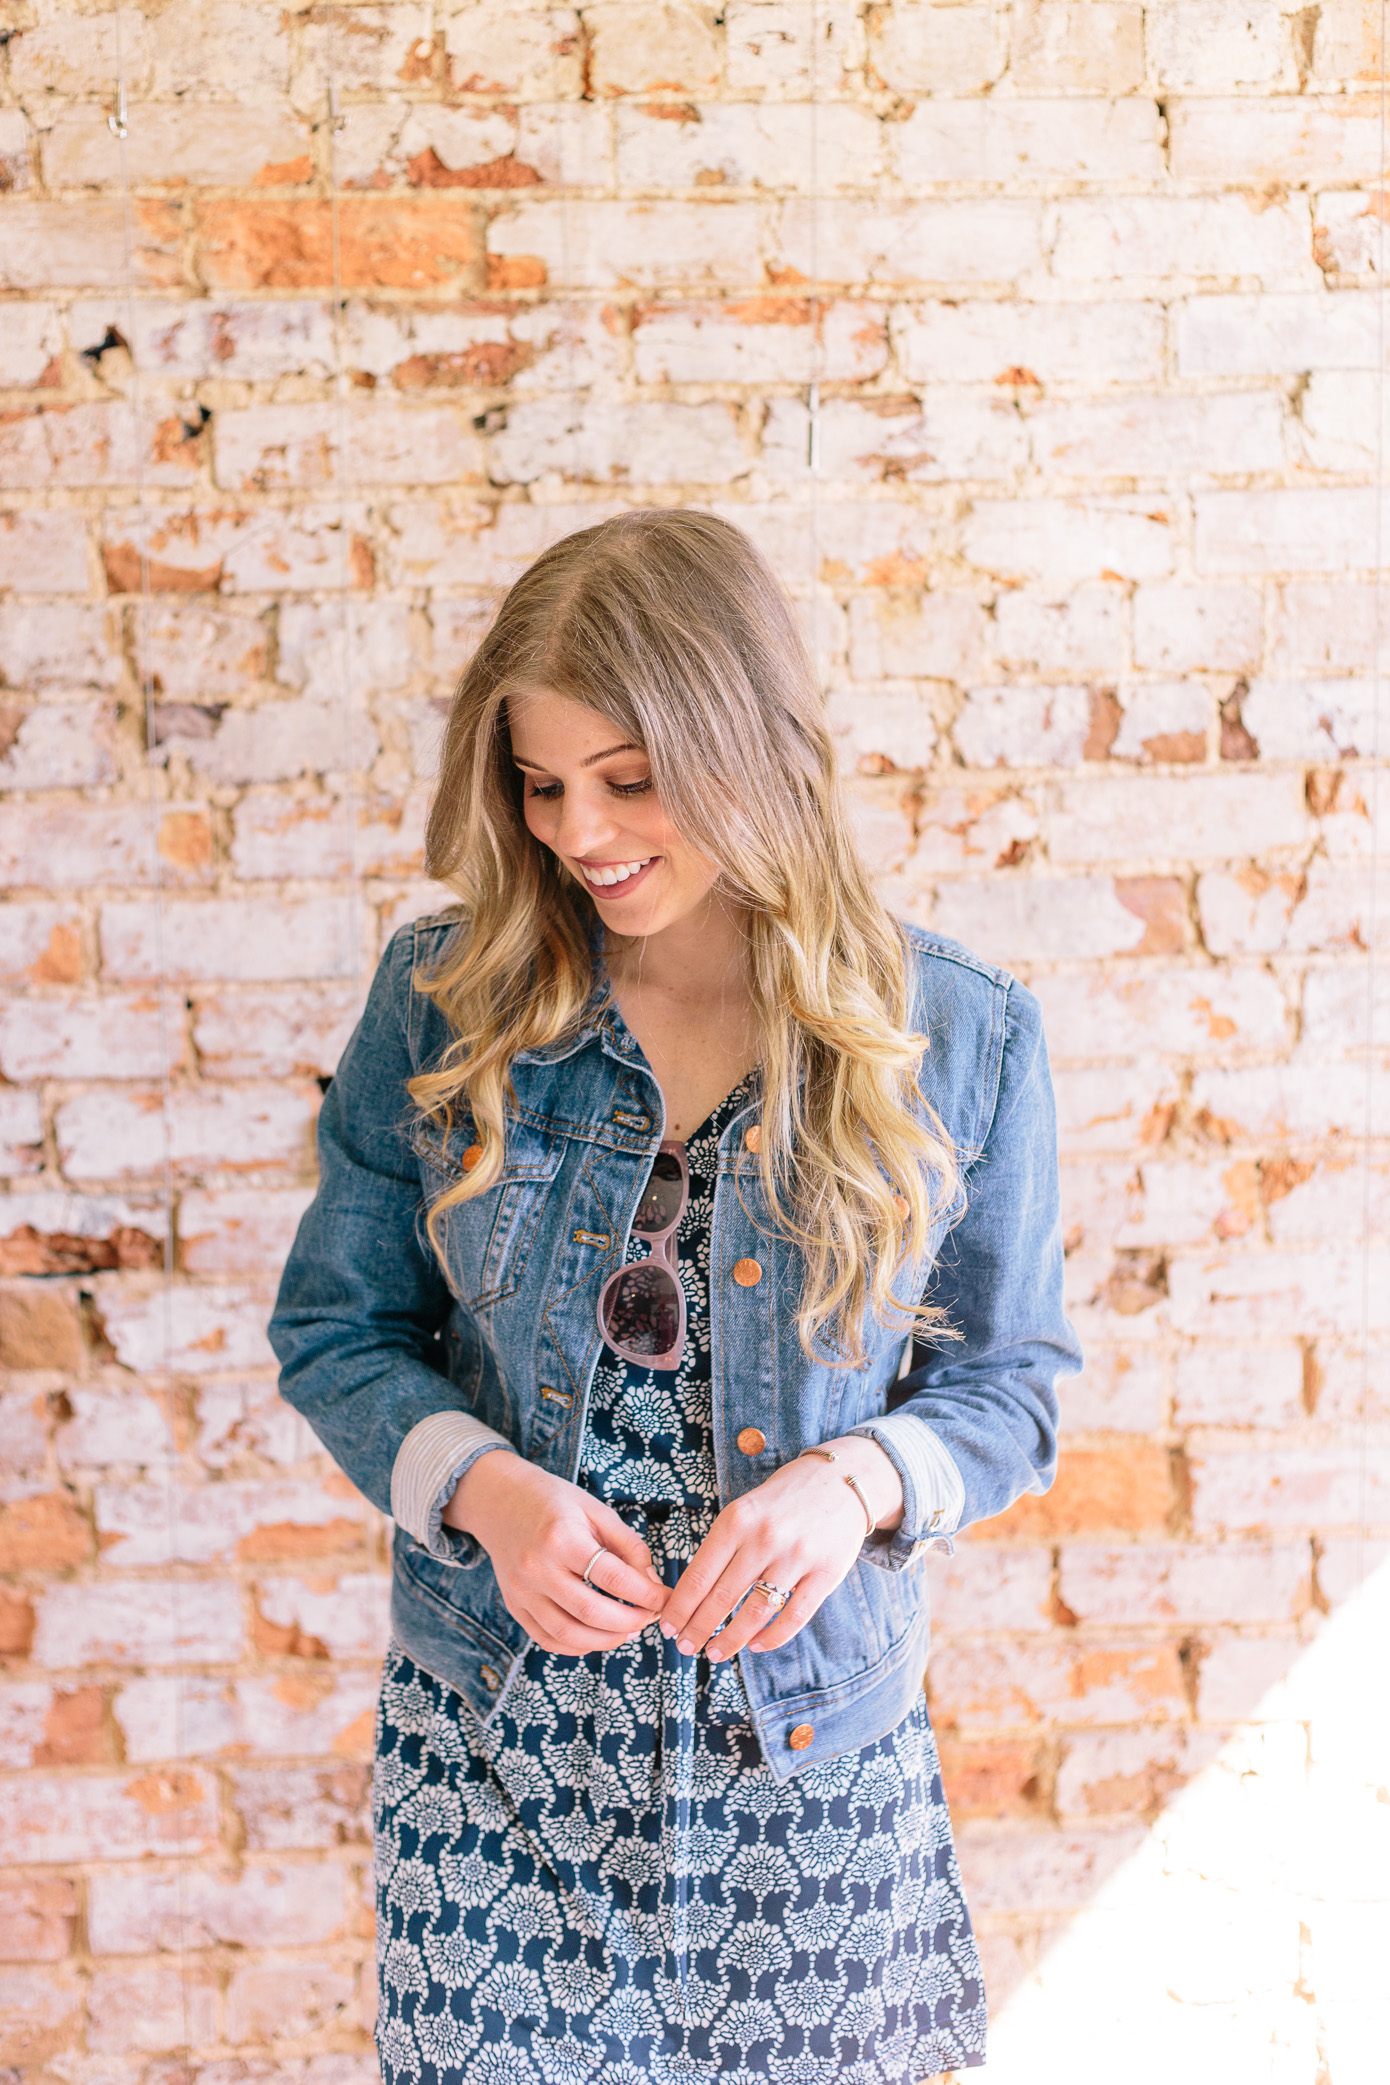 Casual Knit Dress for Spring + Denim Jacket | Louella Reese Life & Style Blog